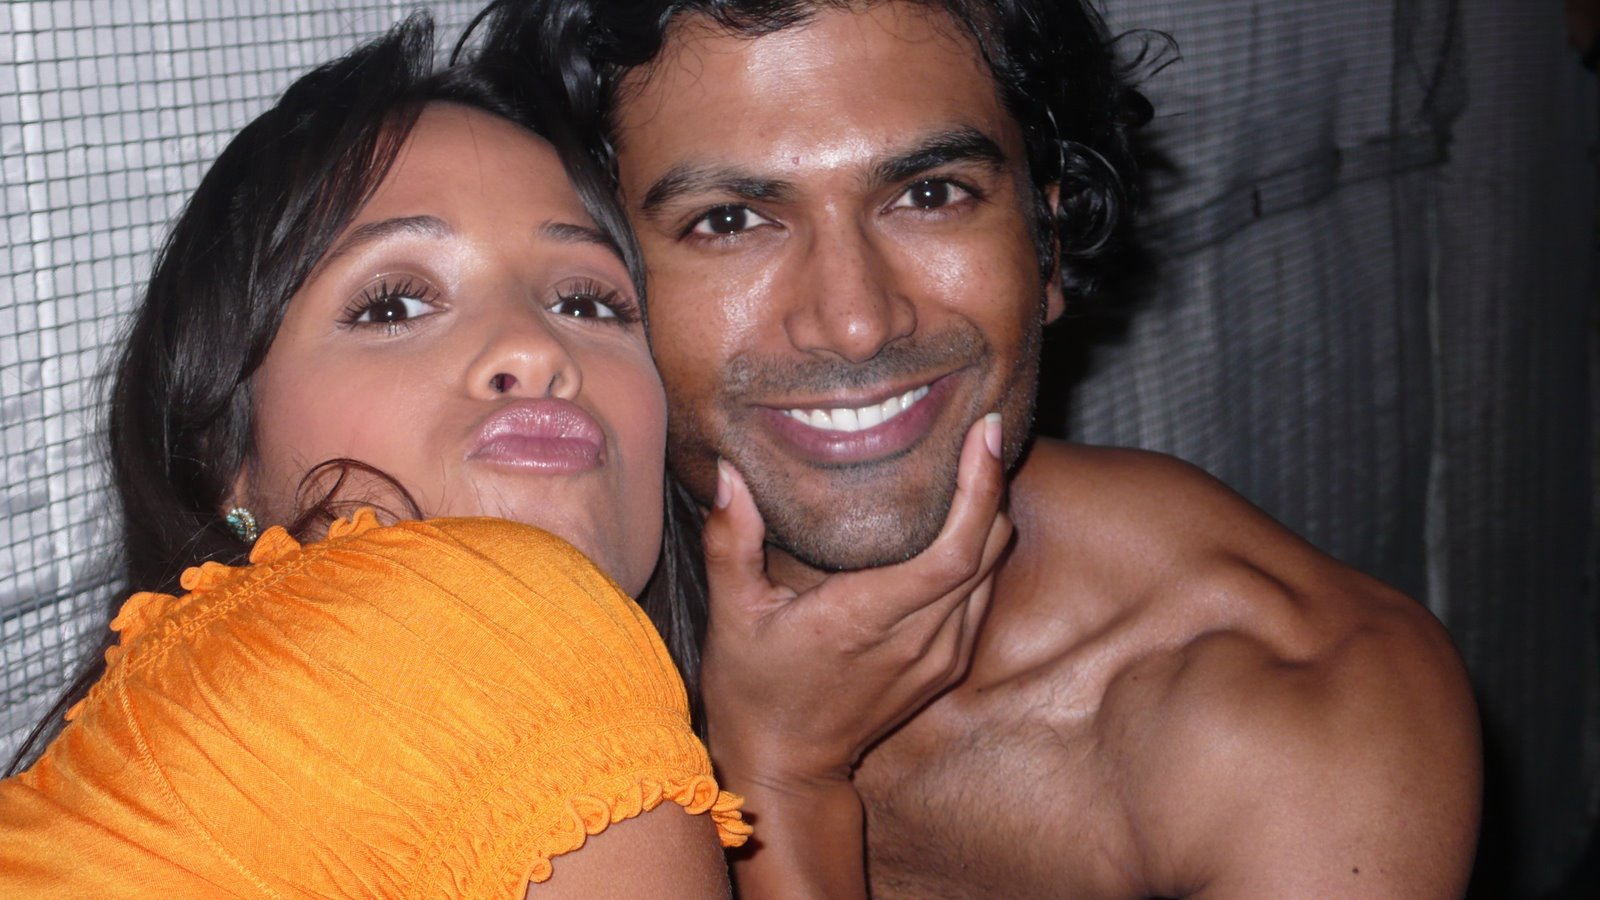 [dania+and+sendhil+quien+es+mas+sexy?]